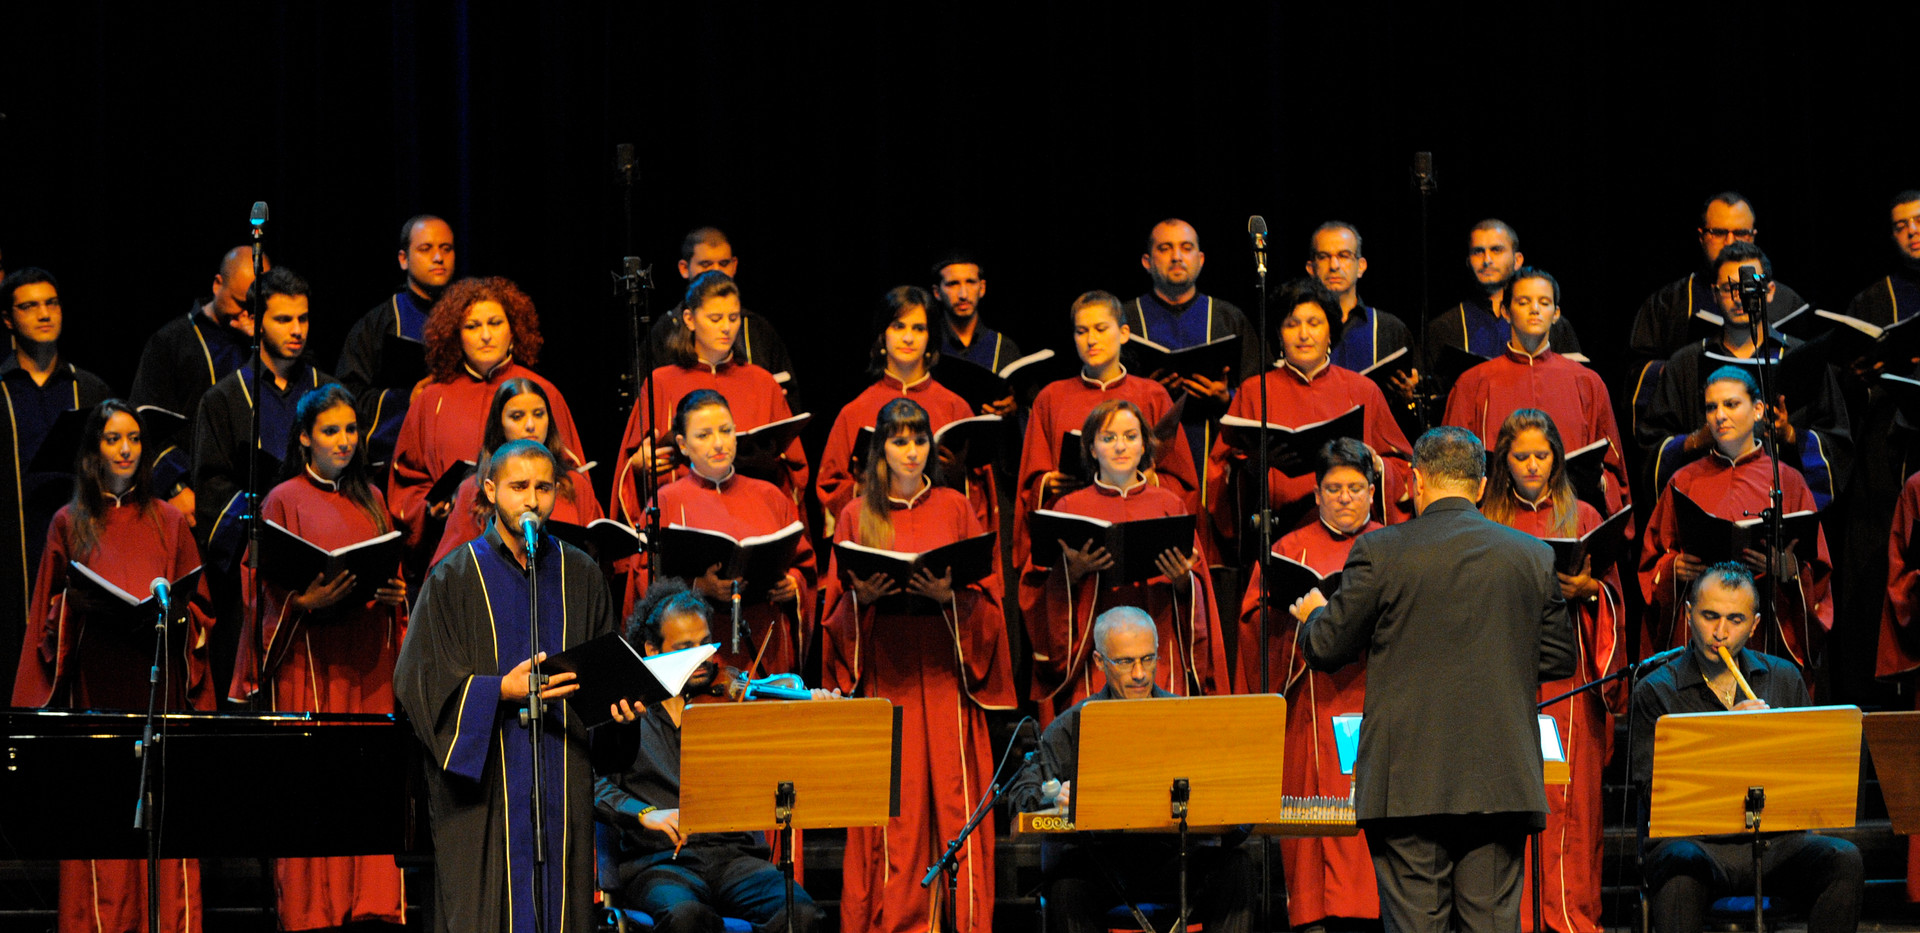 23 SEP11_1307 Choral Crossroads.JPG